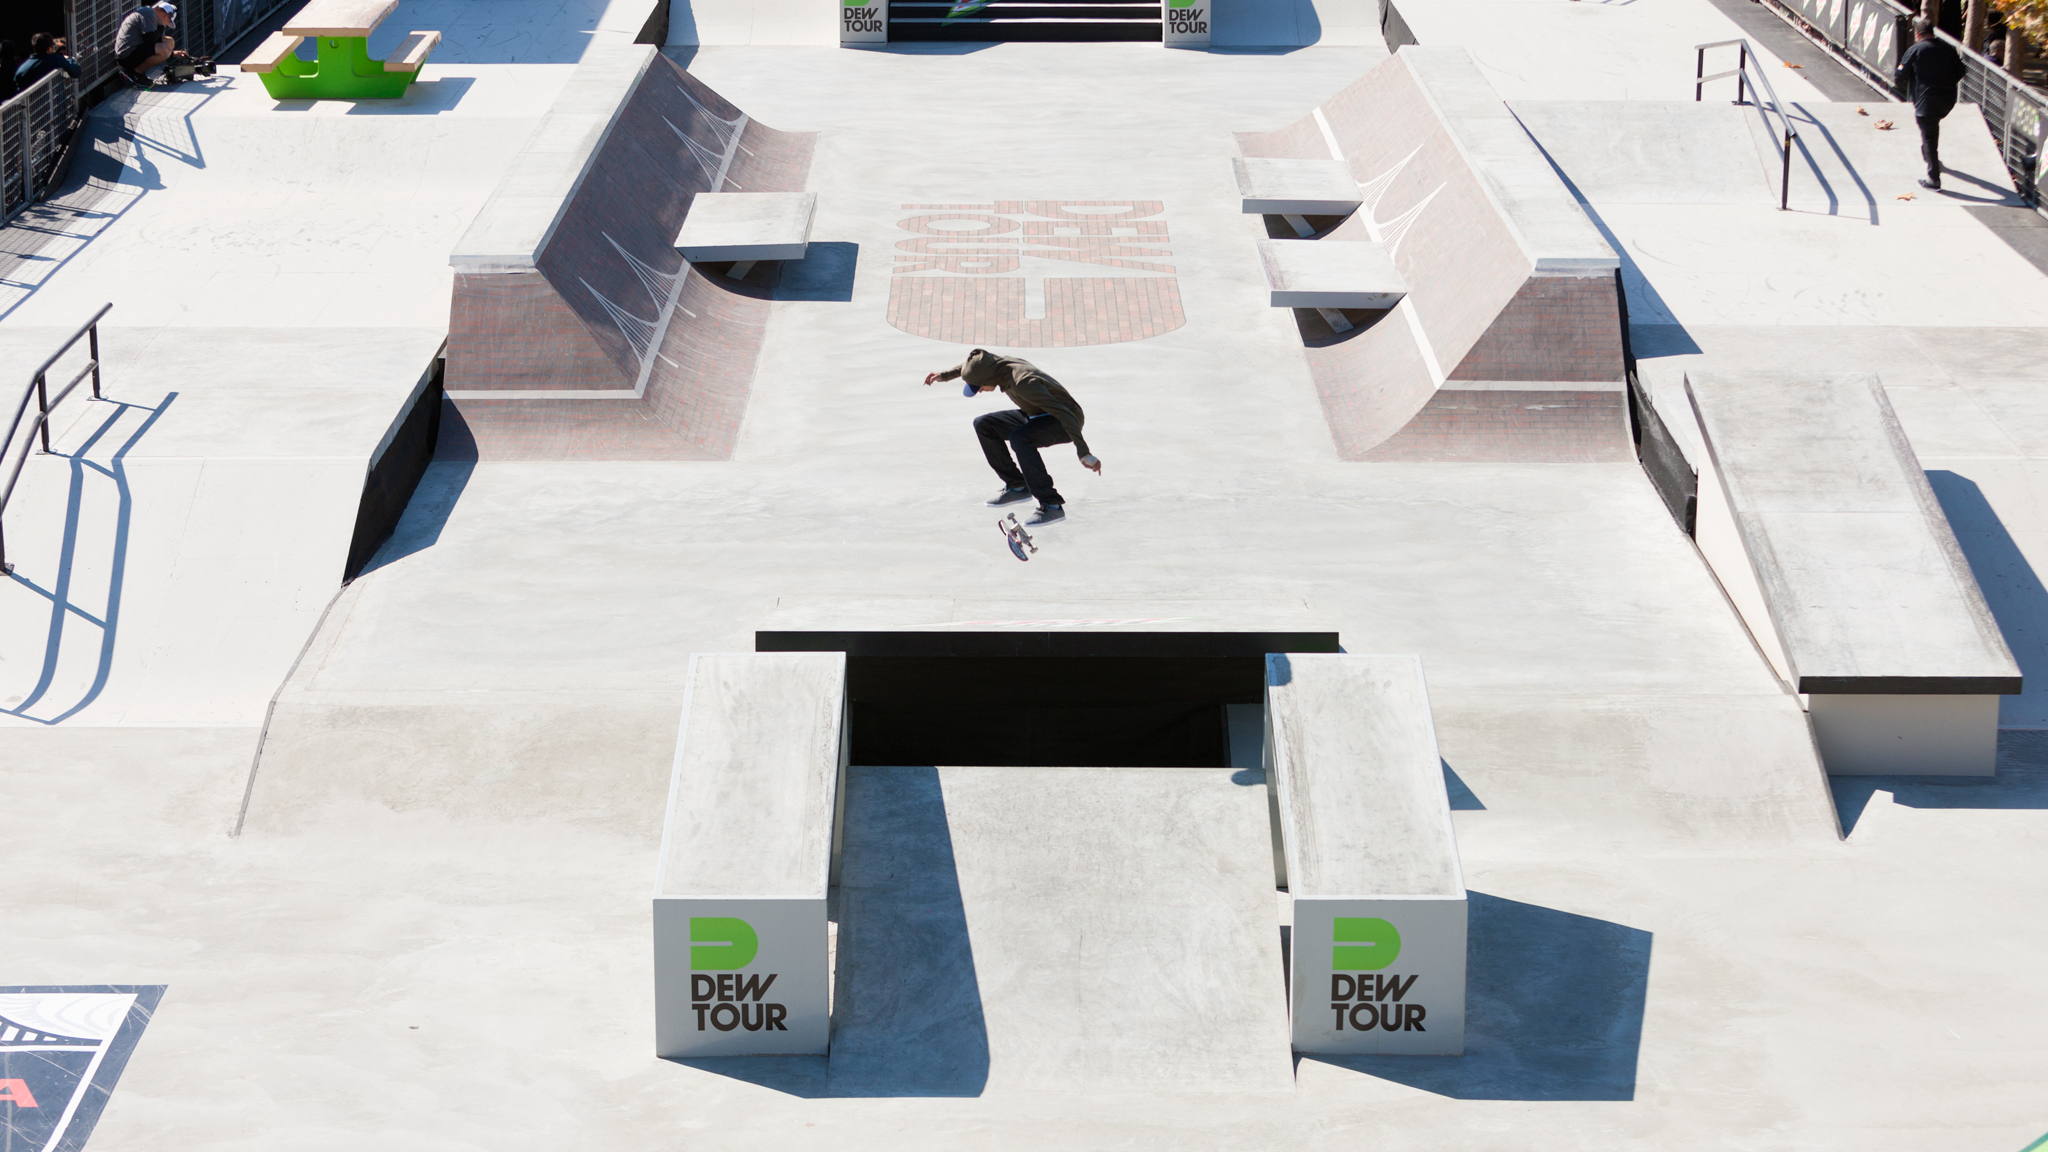 Dew Tour Course